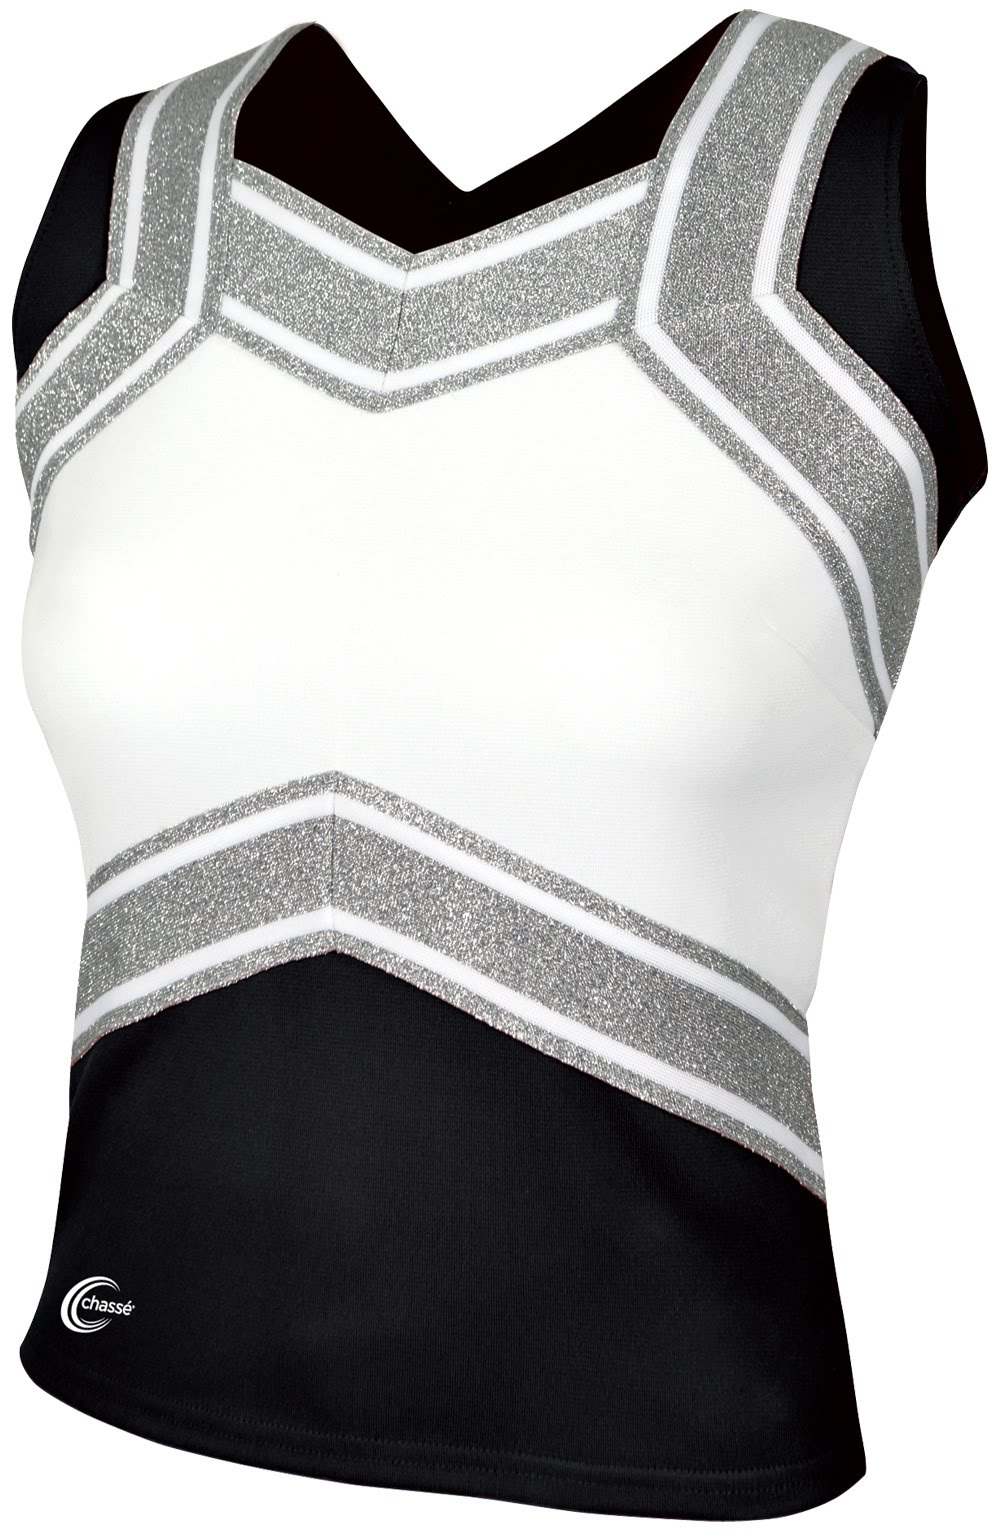 "Cheerleading Shell - Alleson, polyester, with 6"" x 8"" Express Train Logo on Center Front, Colors:  Black/White with Silver outline"